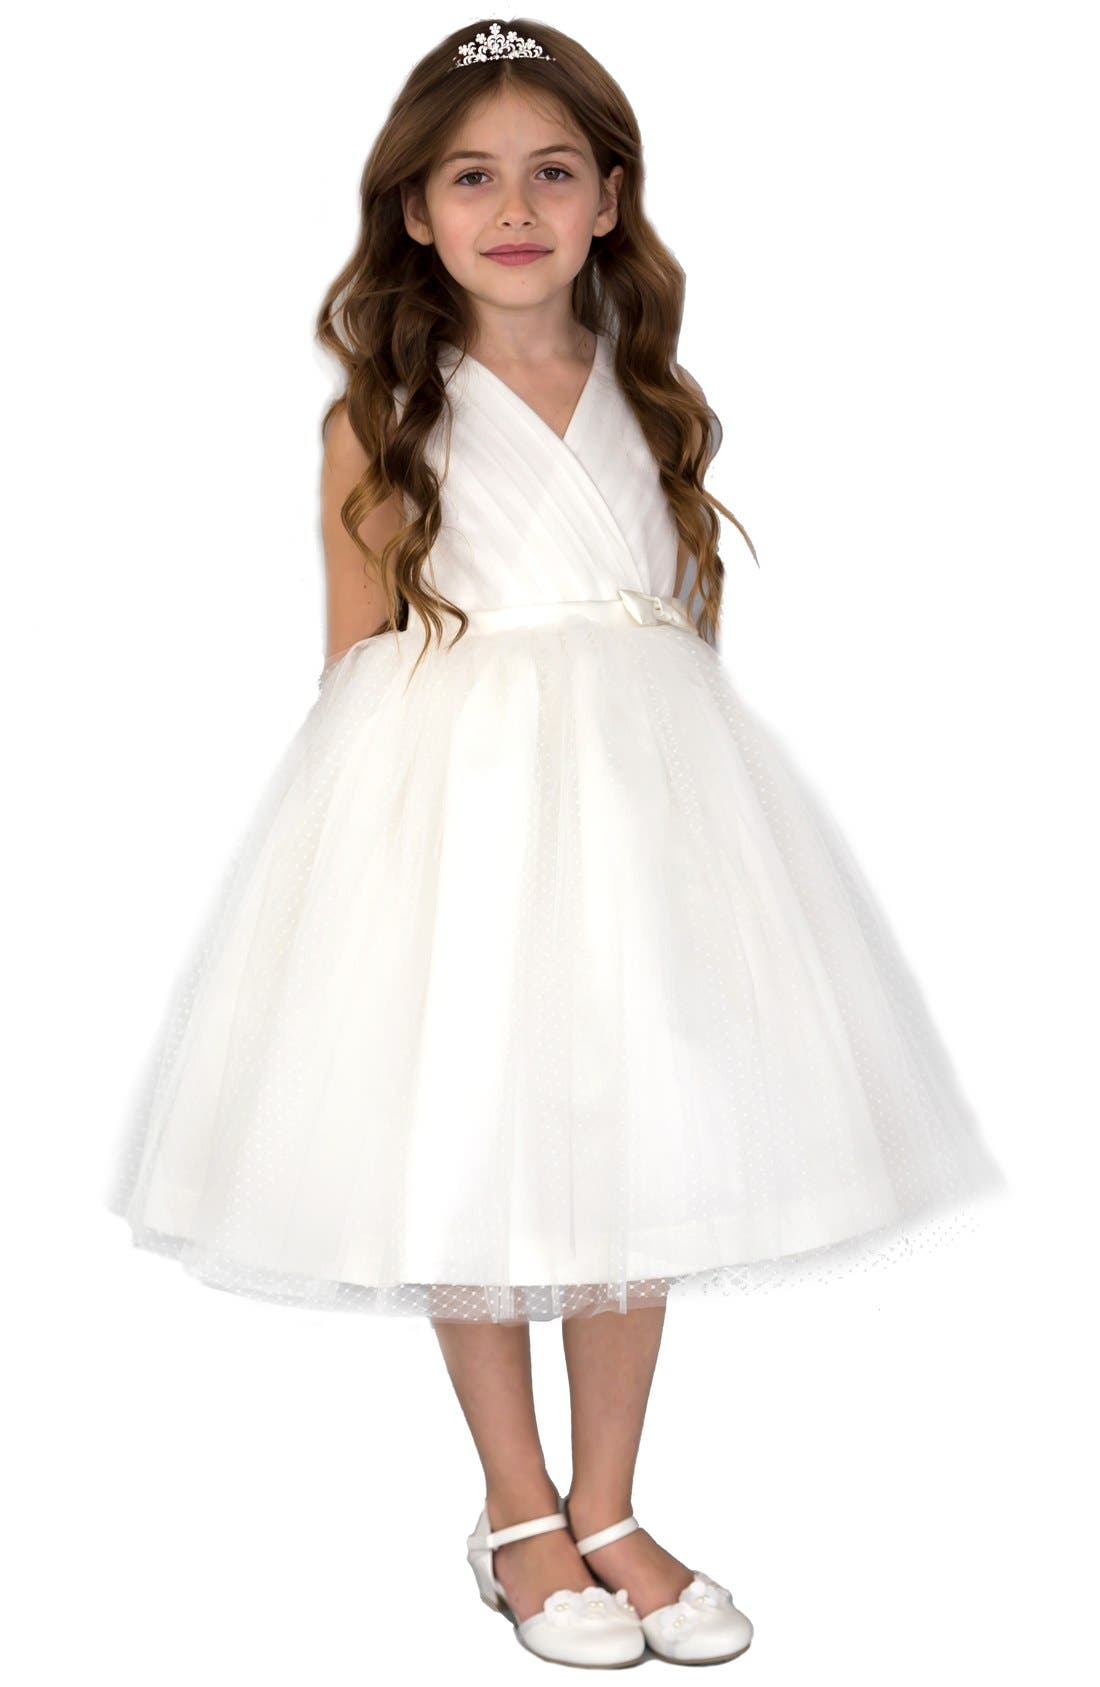 Alternate Image 1 Selected - Us Angels Pleated Dress (Toddler Girls, Little Girls & Big Girls)